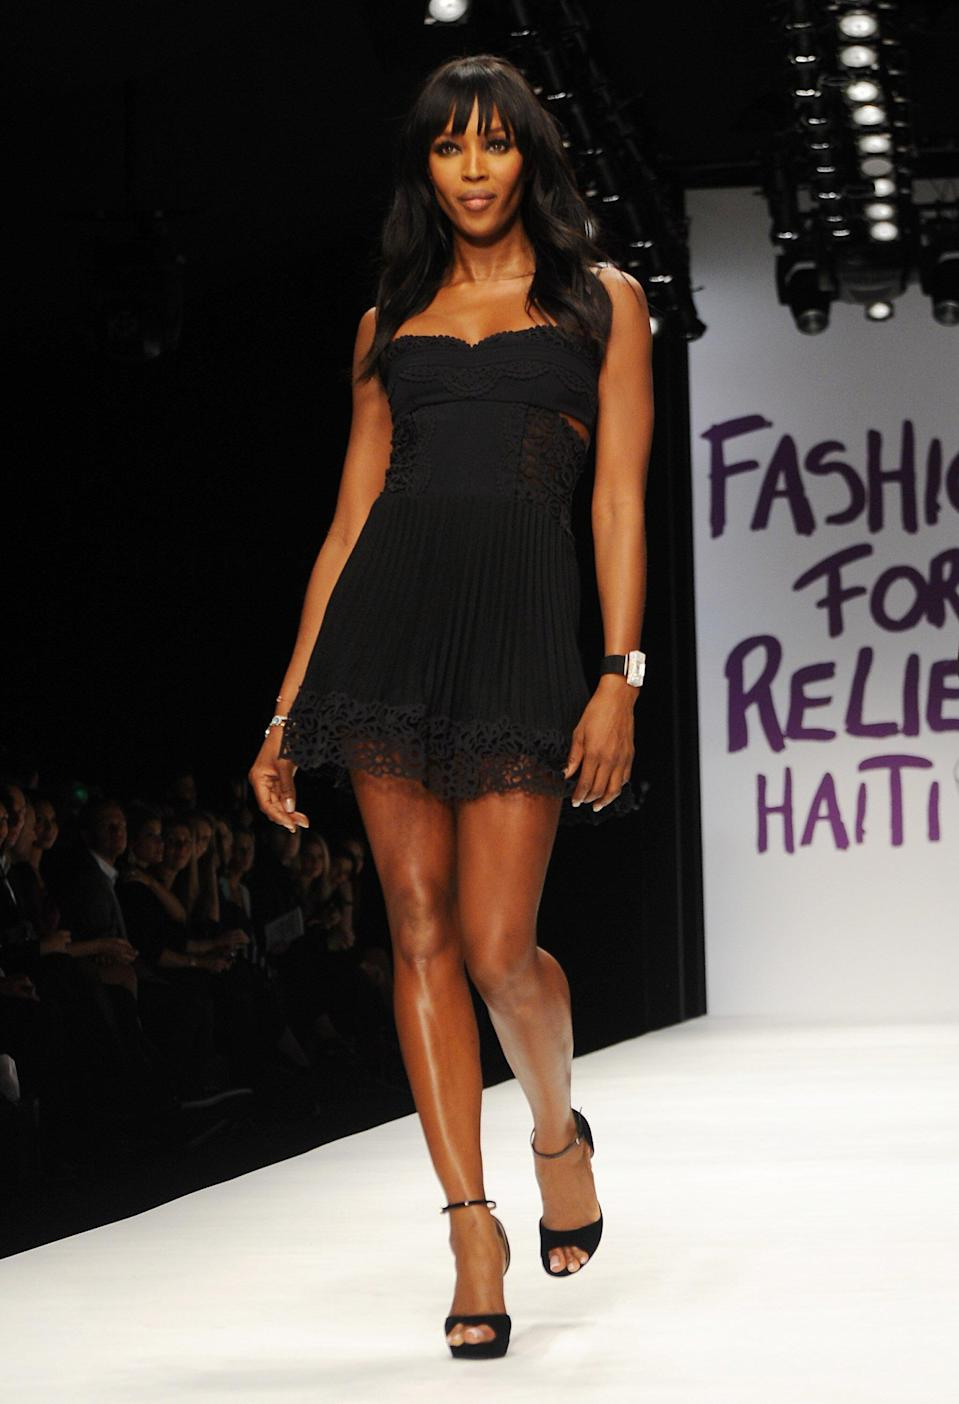 <p>Campbell used her runway prowess for good through her Fashion for Relief. In 2010, her London show raised disaster relief for the people in Haiti.</p>